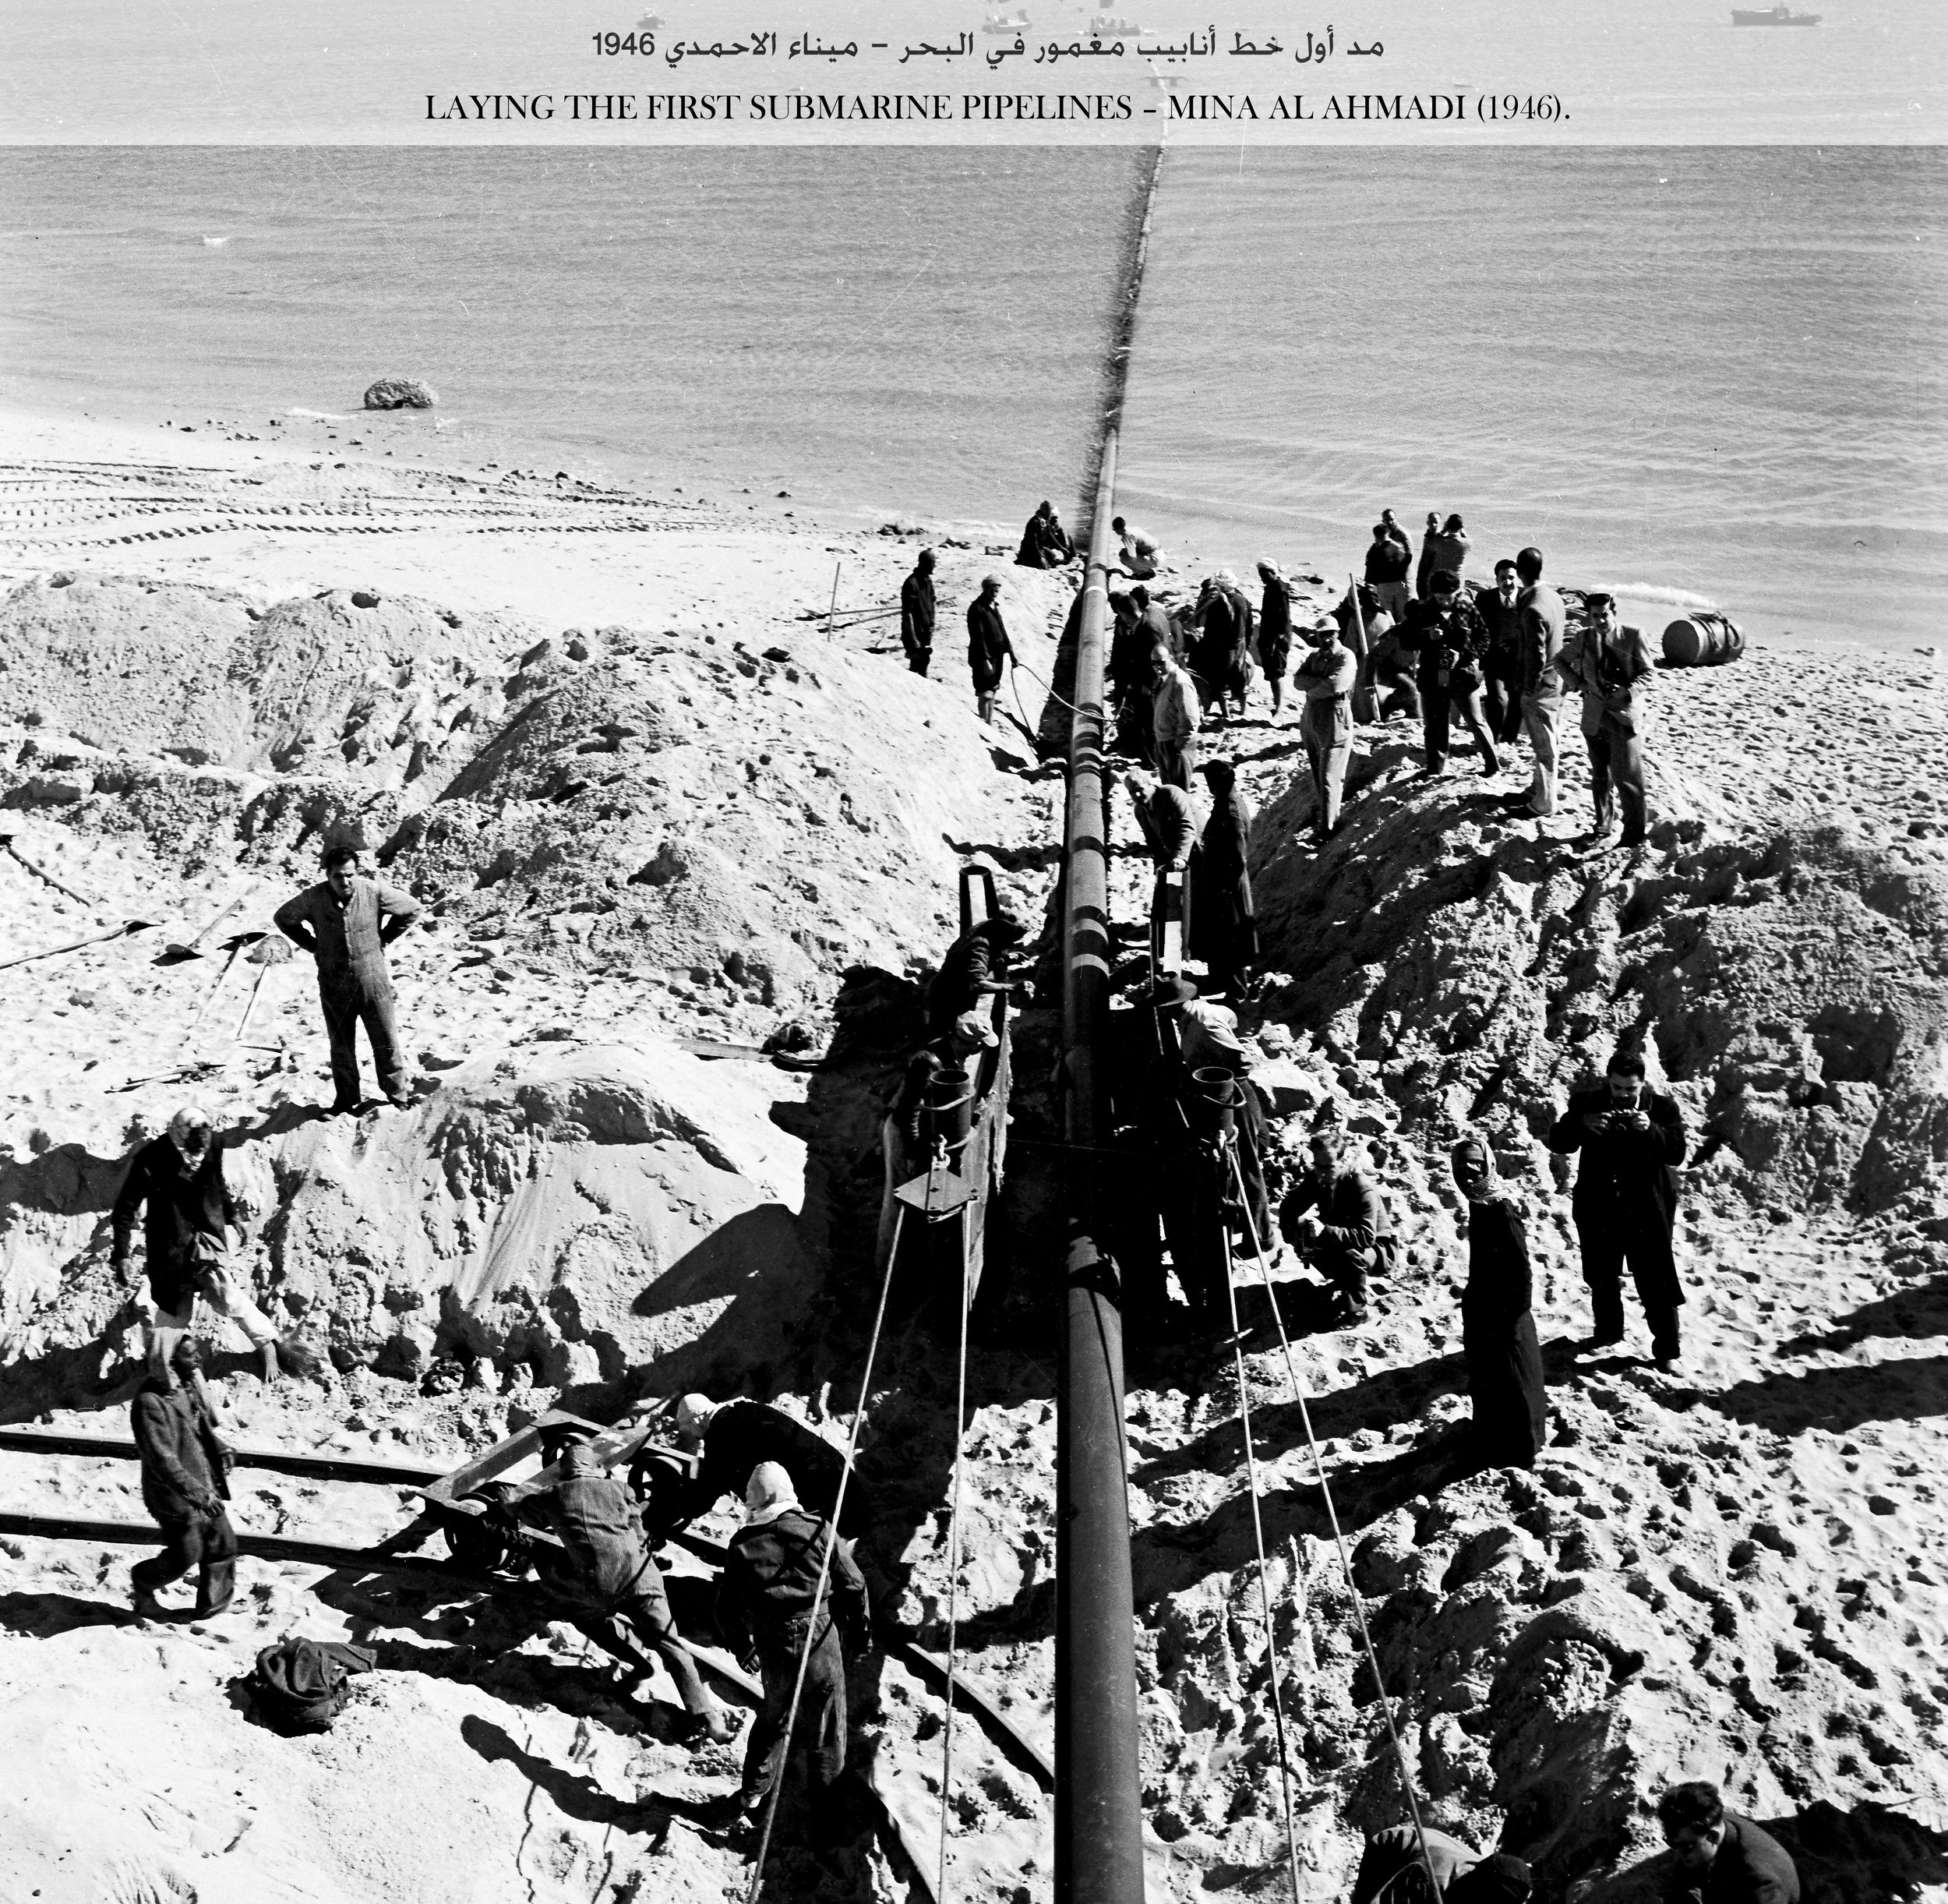 1946 - The first sea-loading line laid.jpg